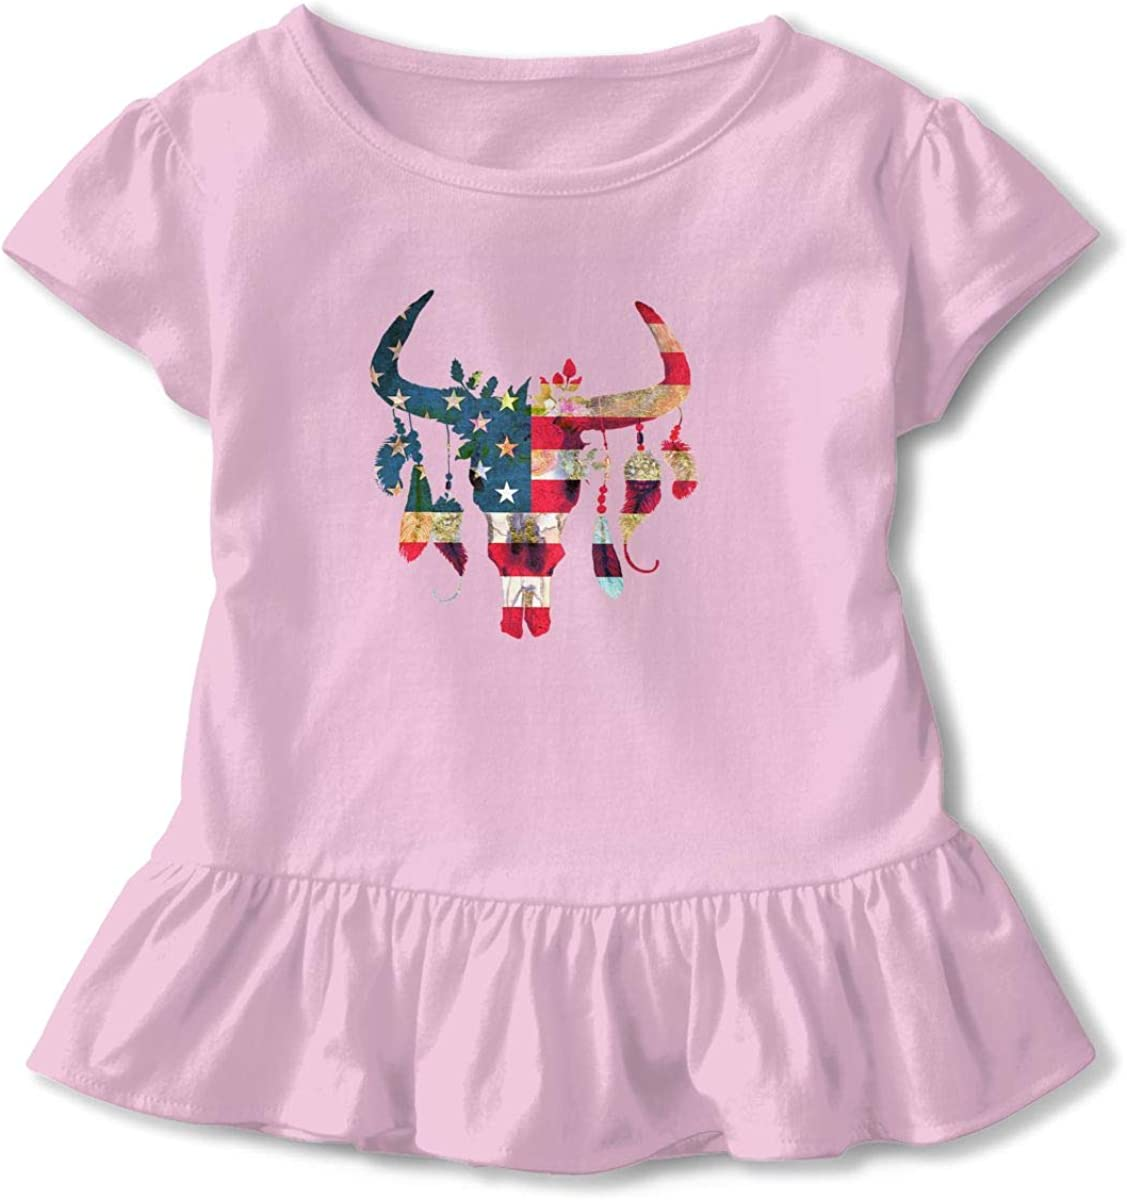 Cheng Jian Bo American Flag Bull Skull with Flowers and Feathers Toddler Girls T Shirt Kids Cotton Short Sleeve Ruffle Tee